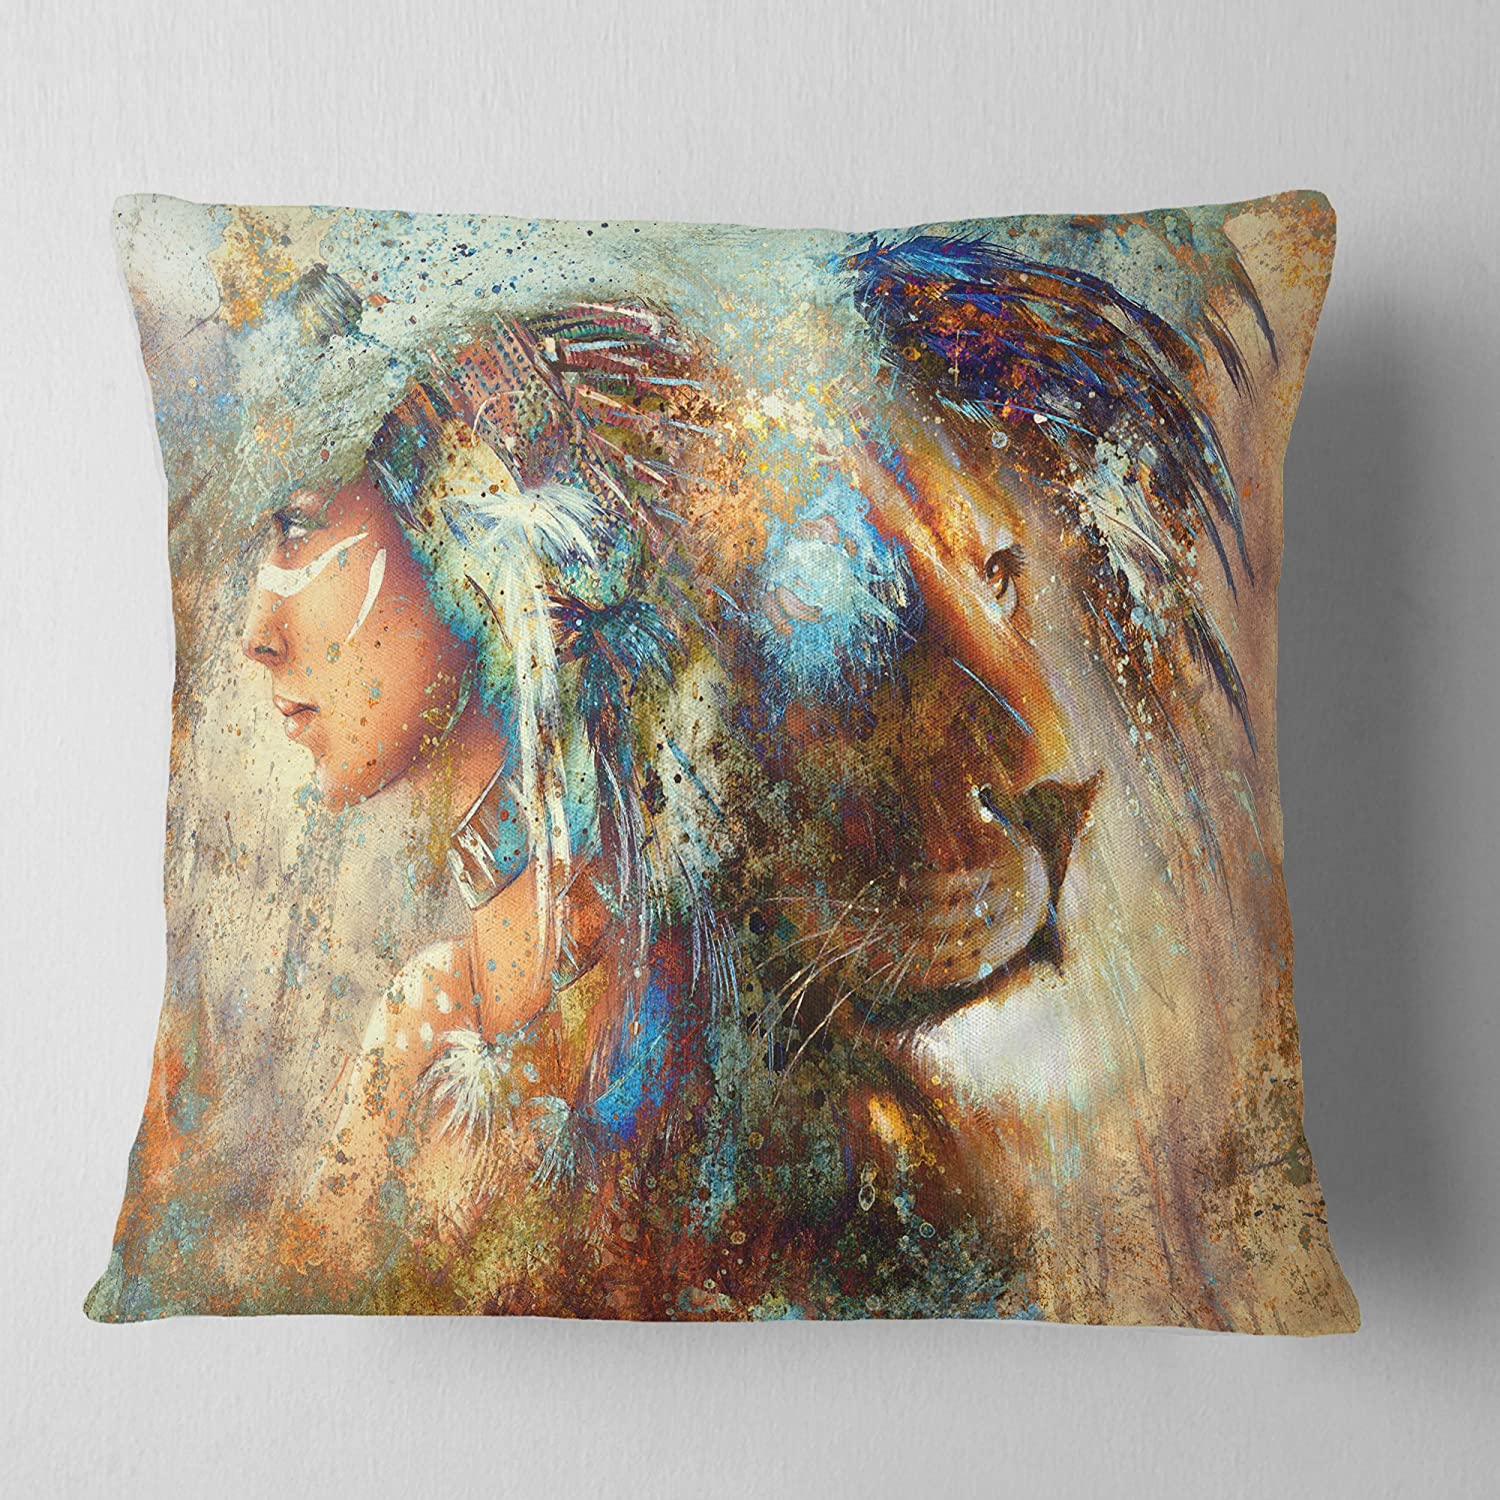 ArtVerse Katelyn Smith 26 x 26 Spun Polyester Double Sided Print with Concealed Zipper /& Insert Minnesota Outline Pillow